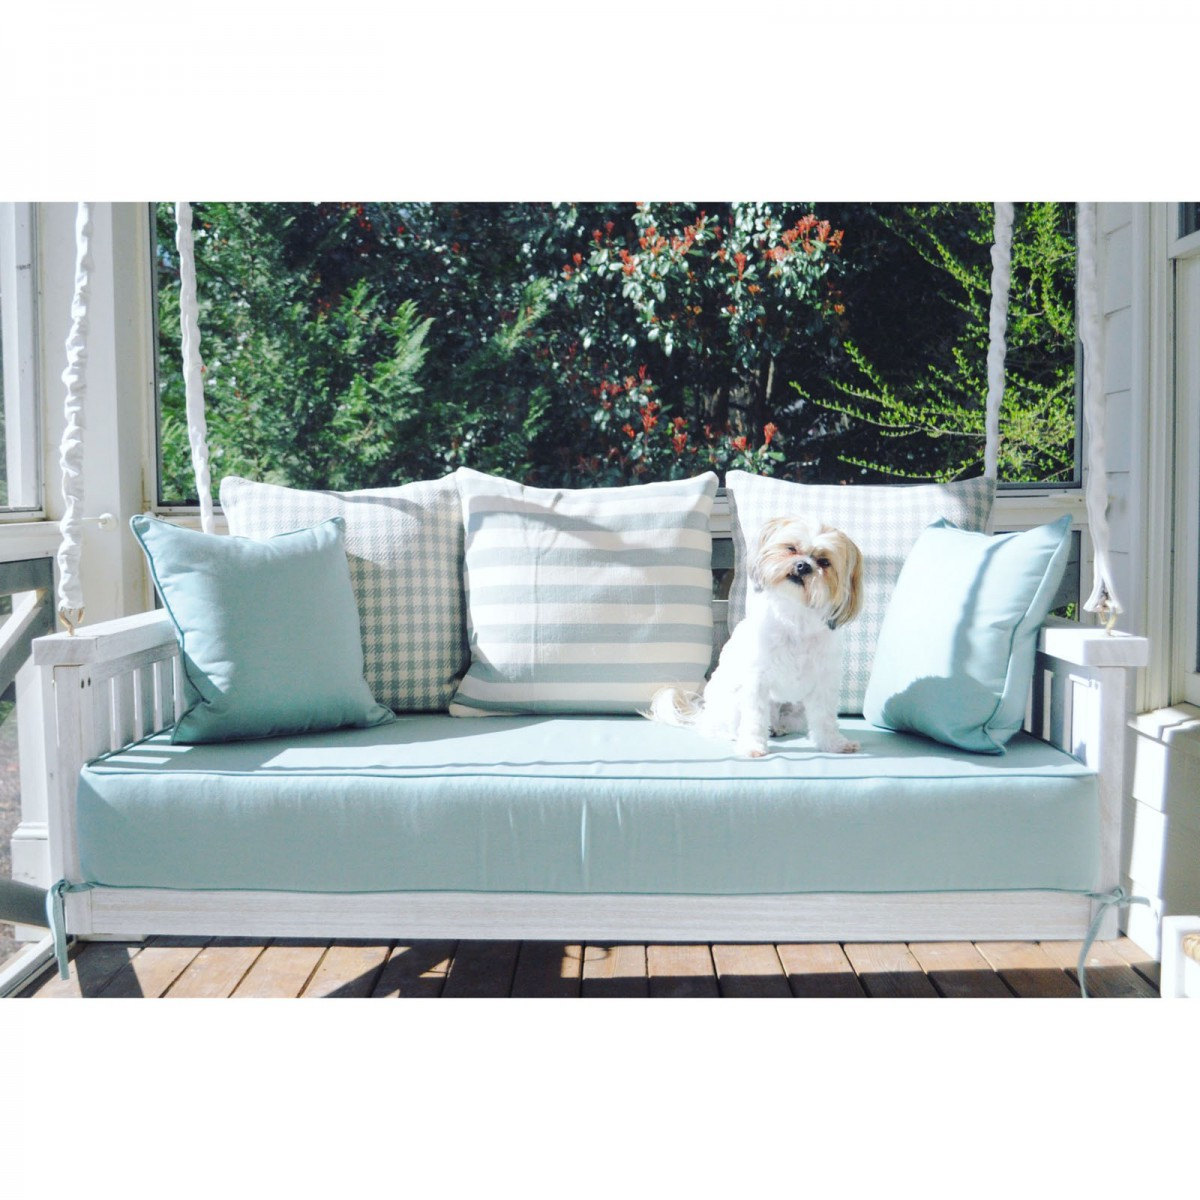 Custom Outdoor Glider / Porch Swing Cushions – Outdoor Regarding Outdoor Loveseat Gliders With Cushion (View 24 of 25)